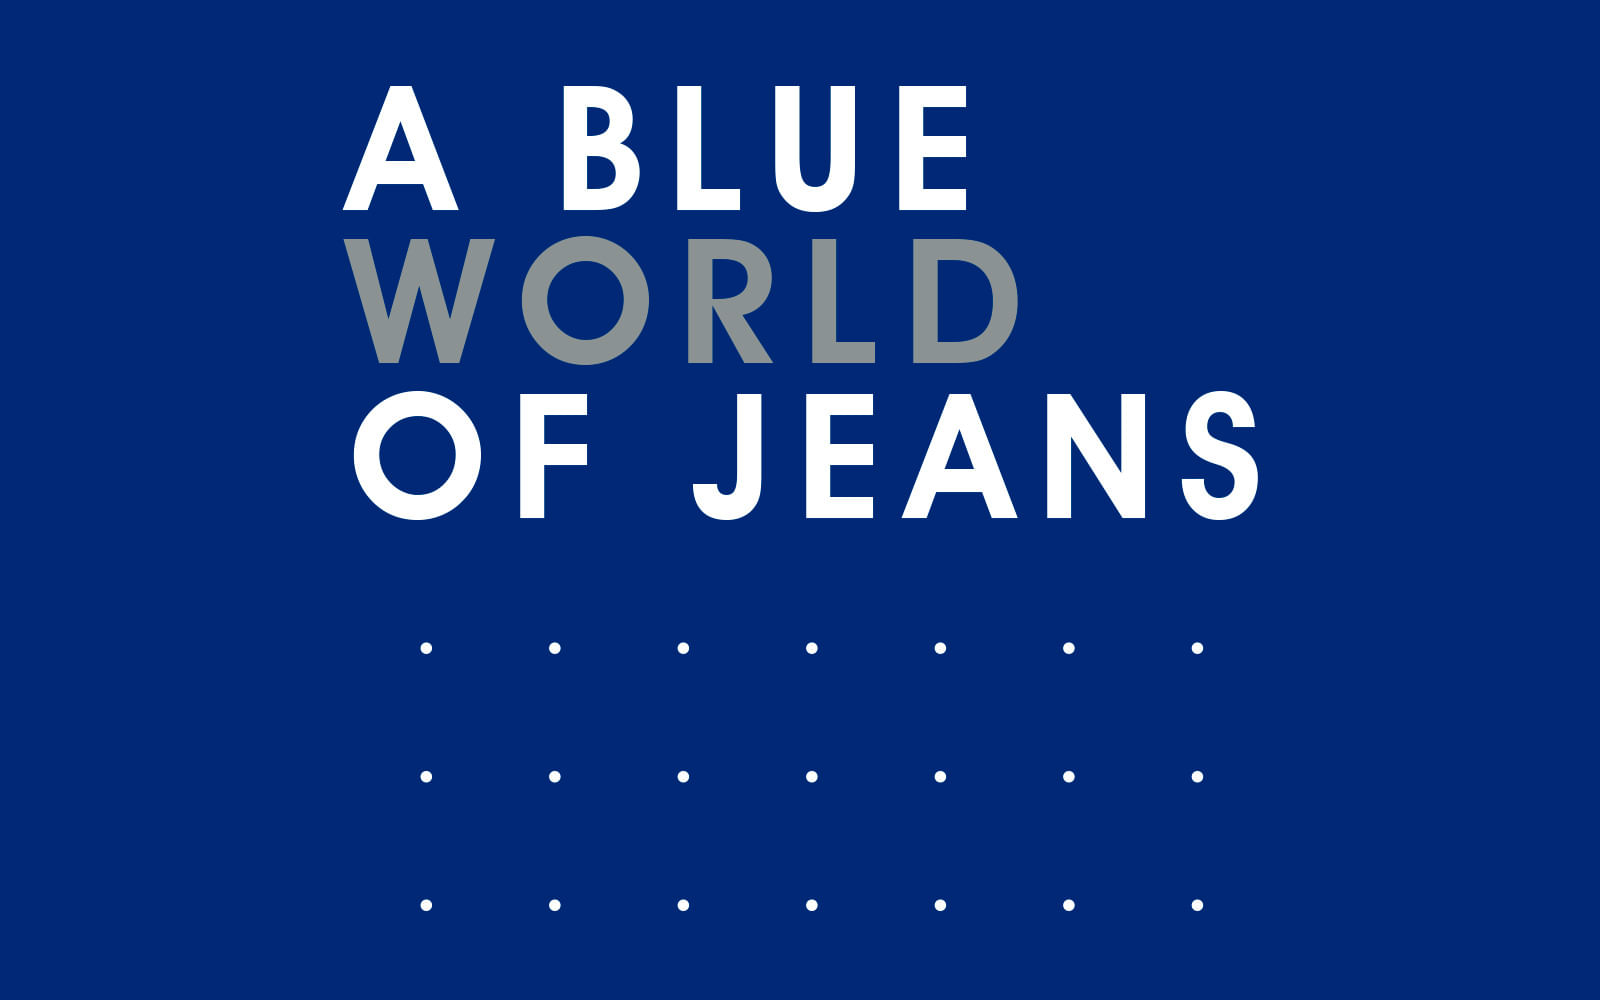 A blue world of jeans